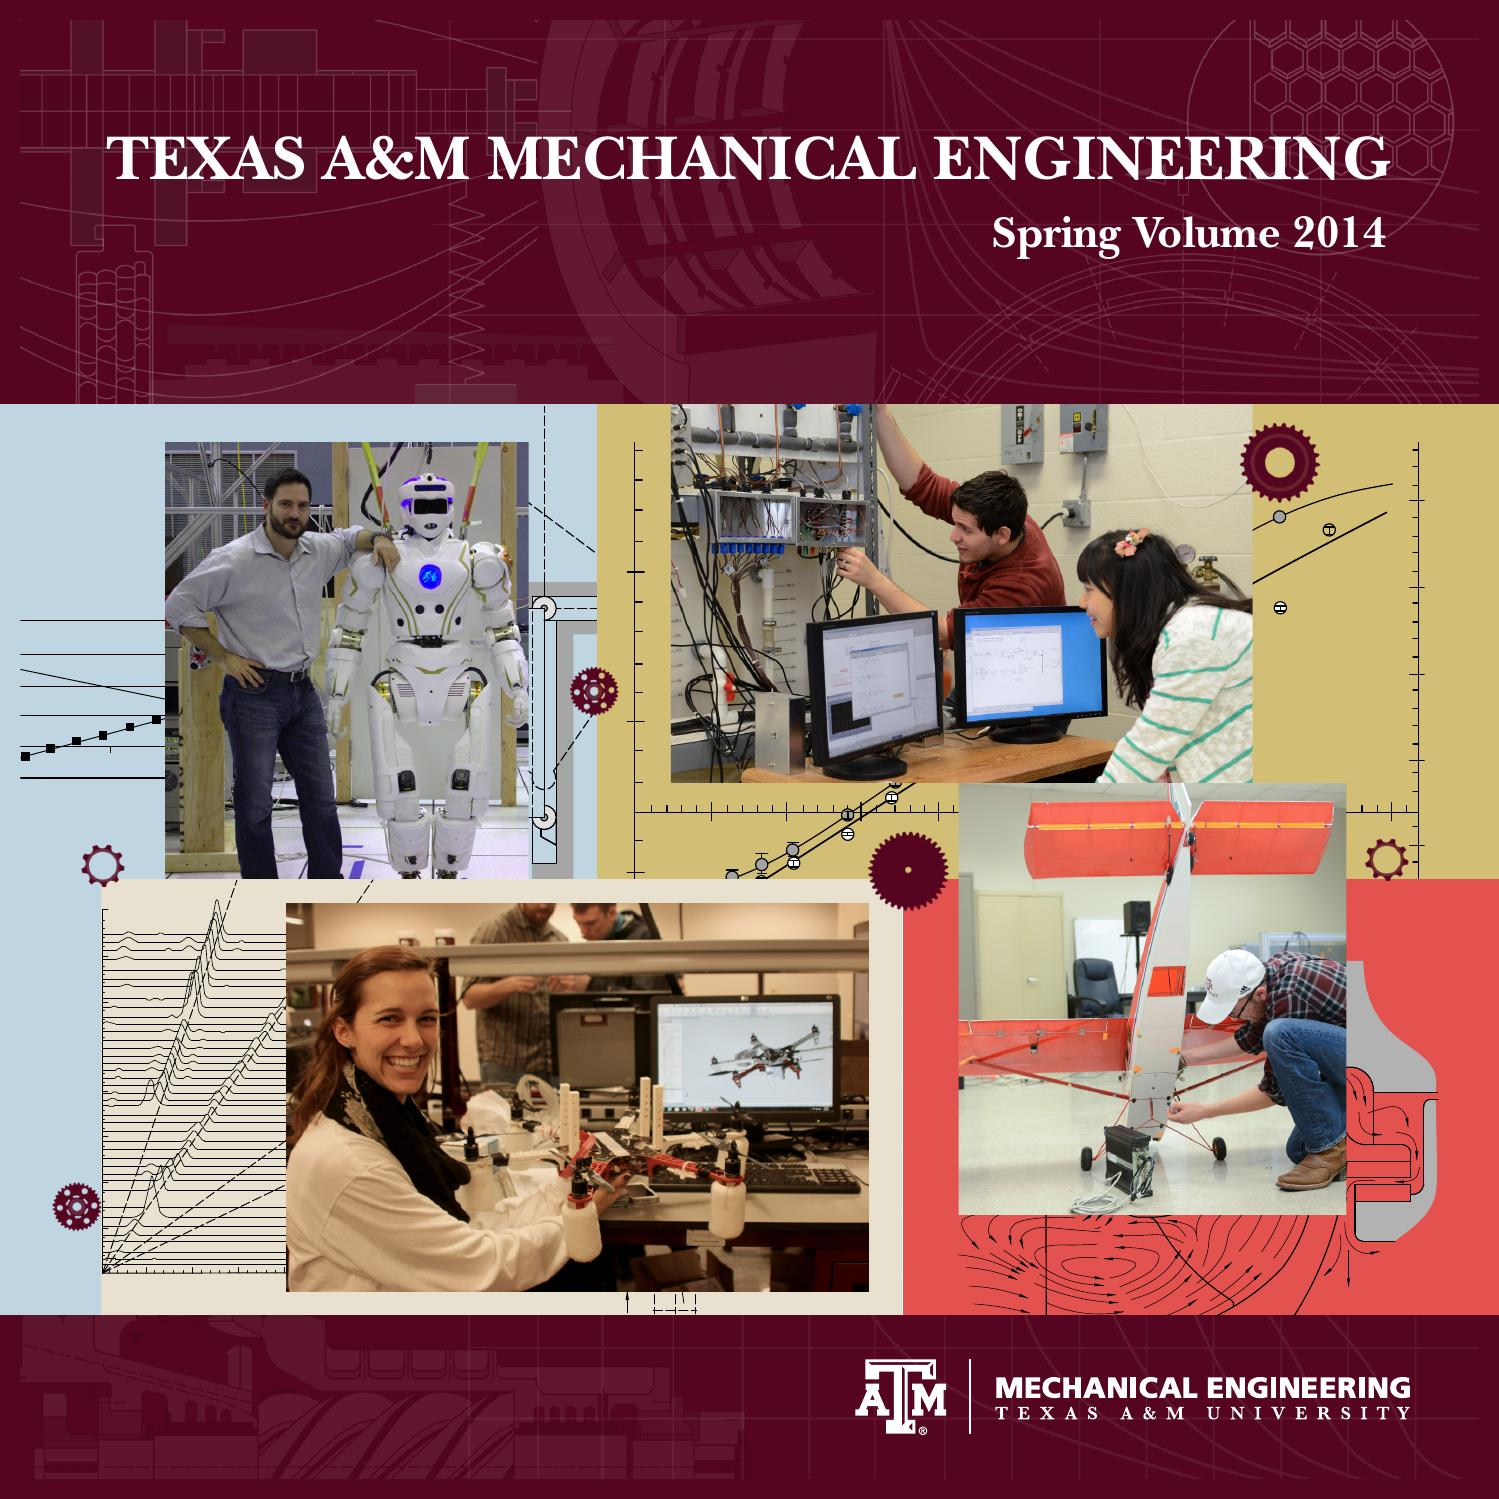 Texas A&M Mechanical Engineering - Spring Volume 2014 by